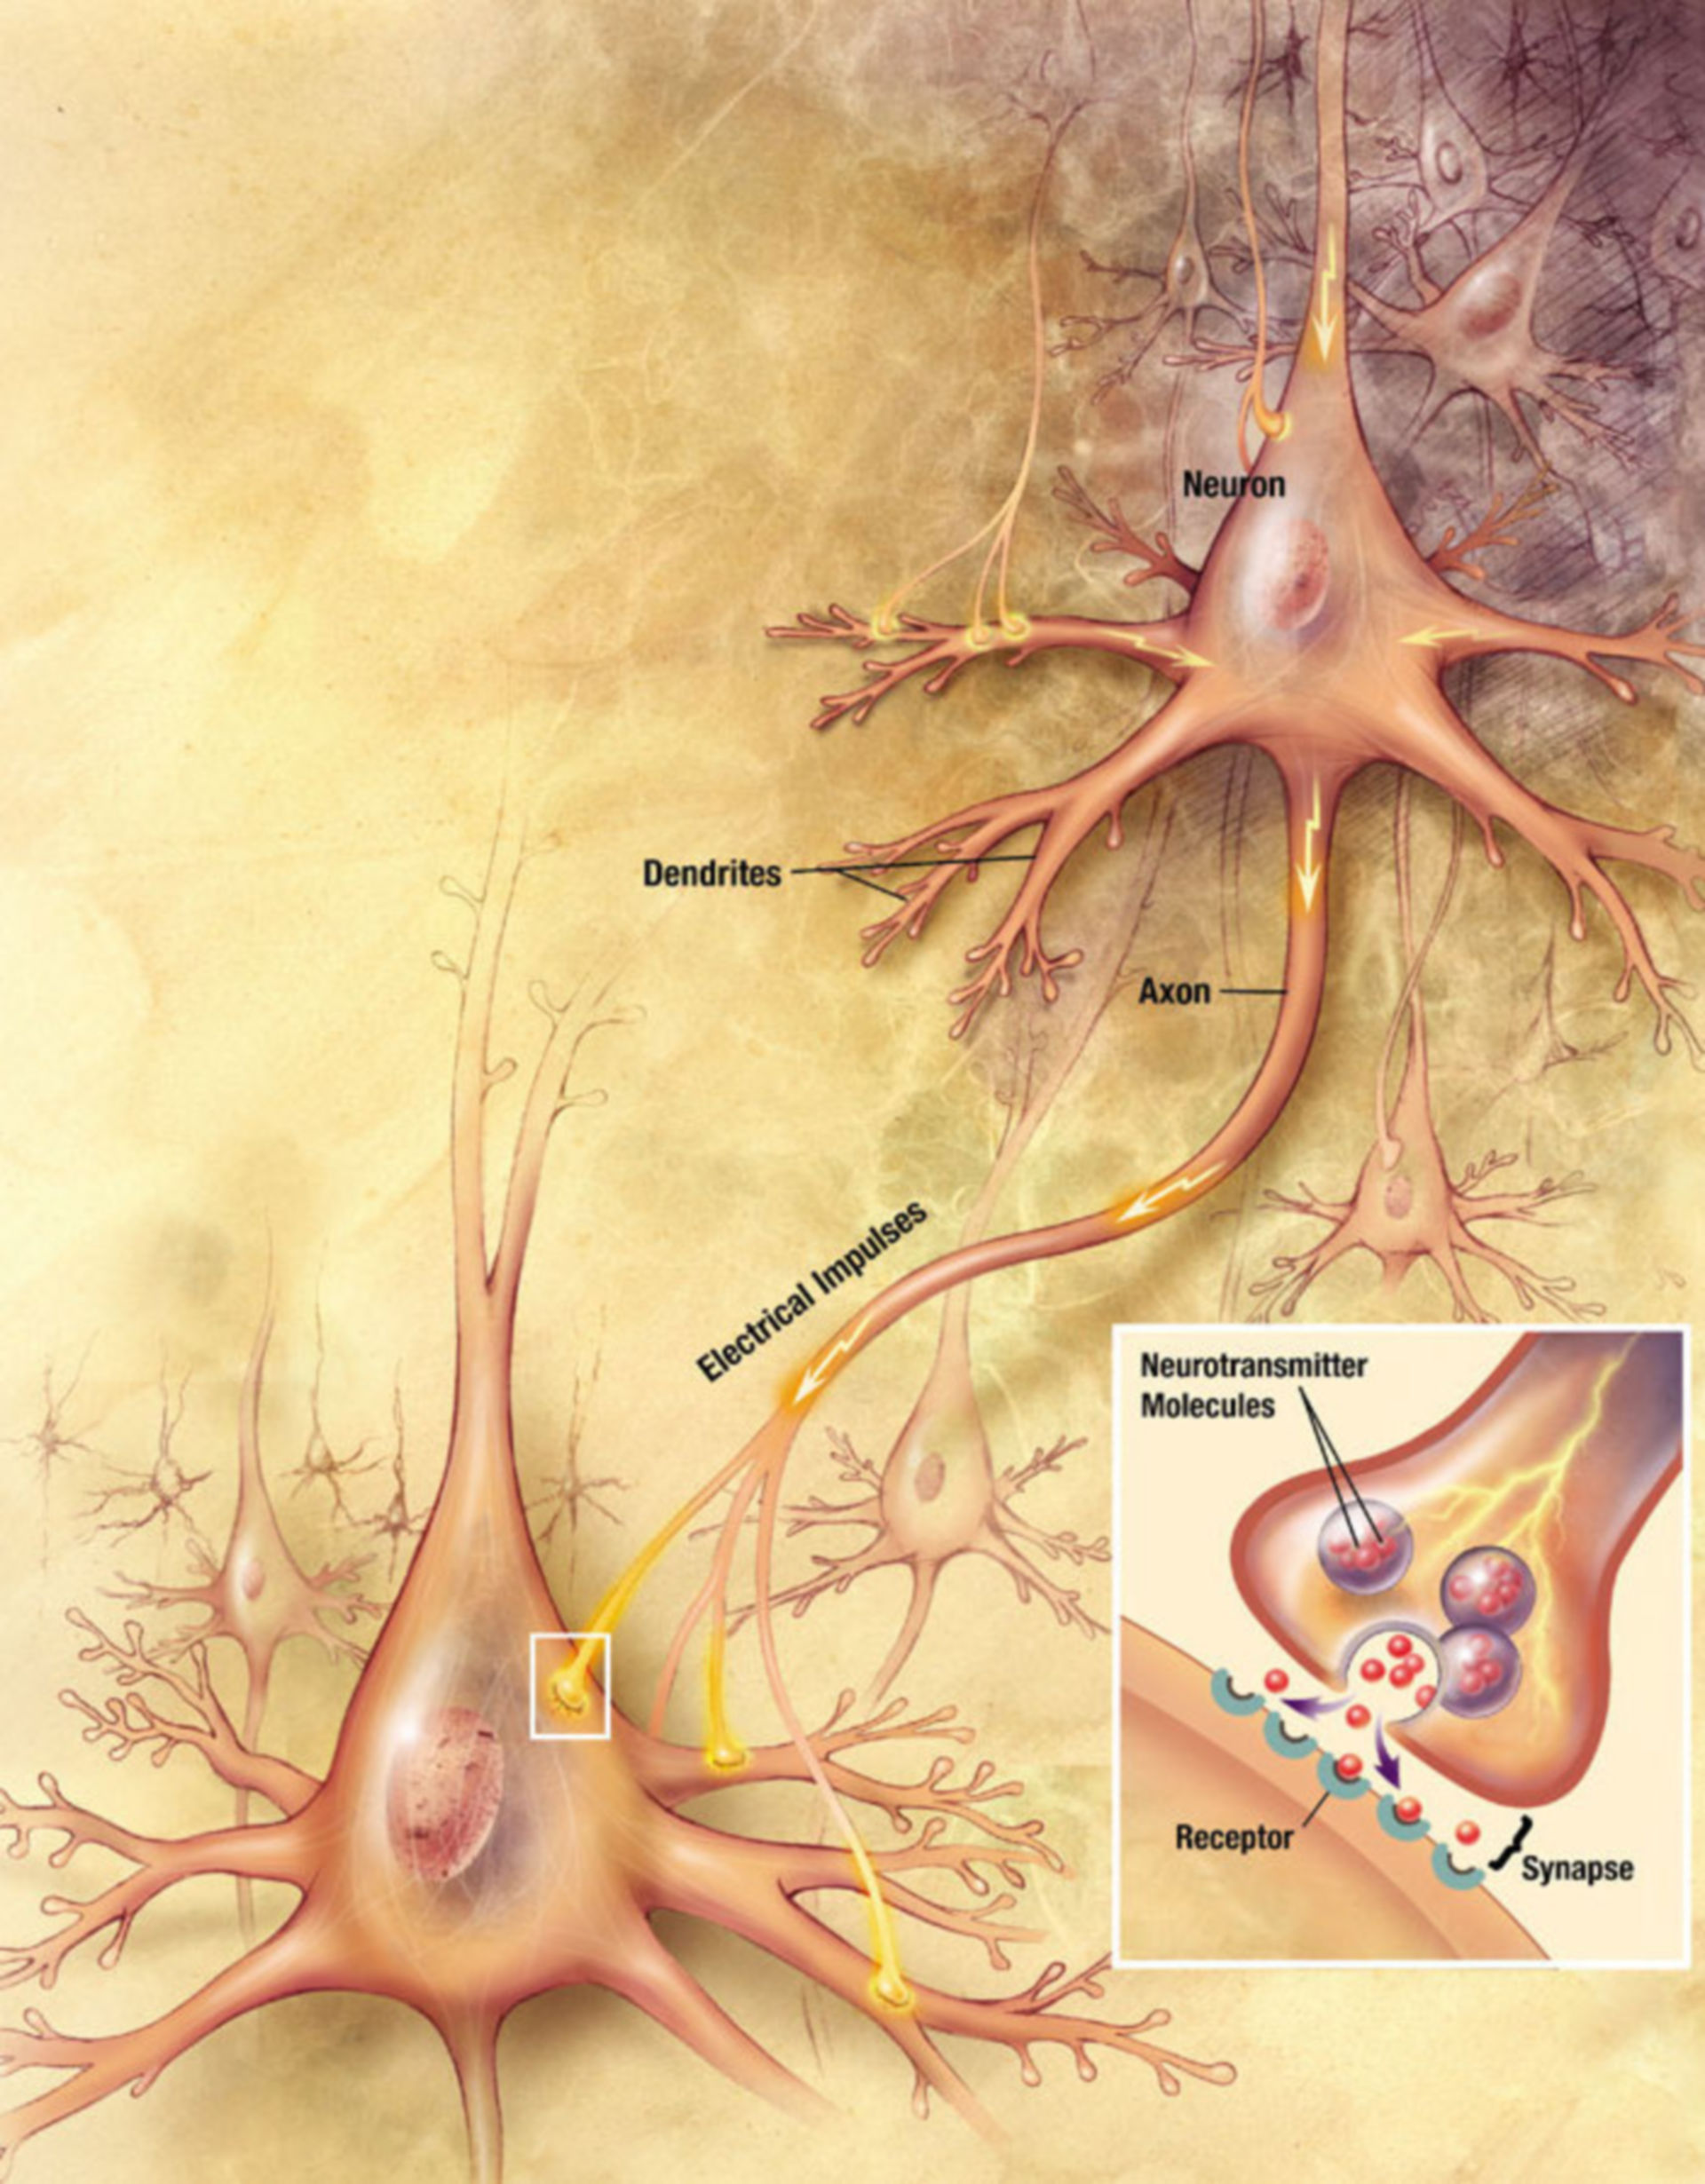 Synaptic transmission in neurons